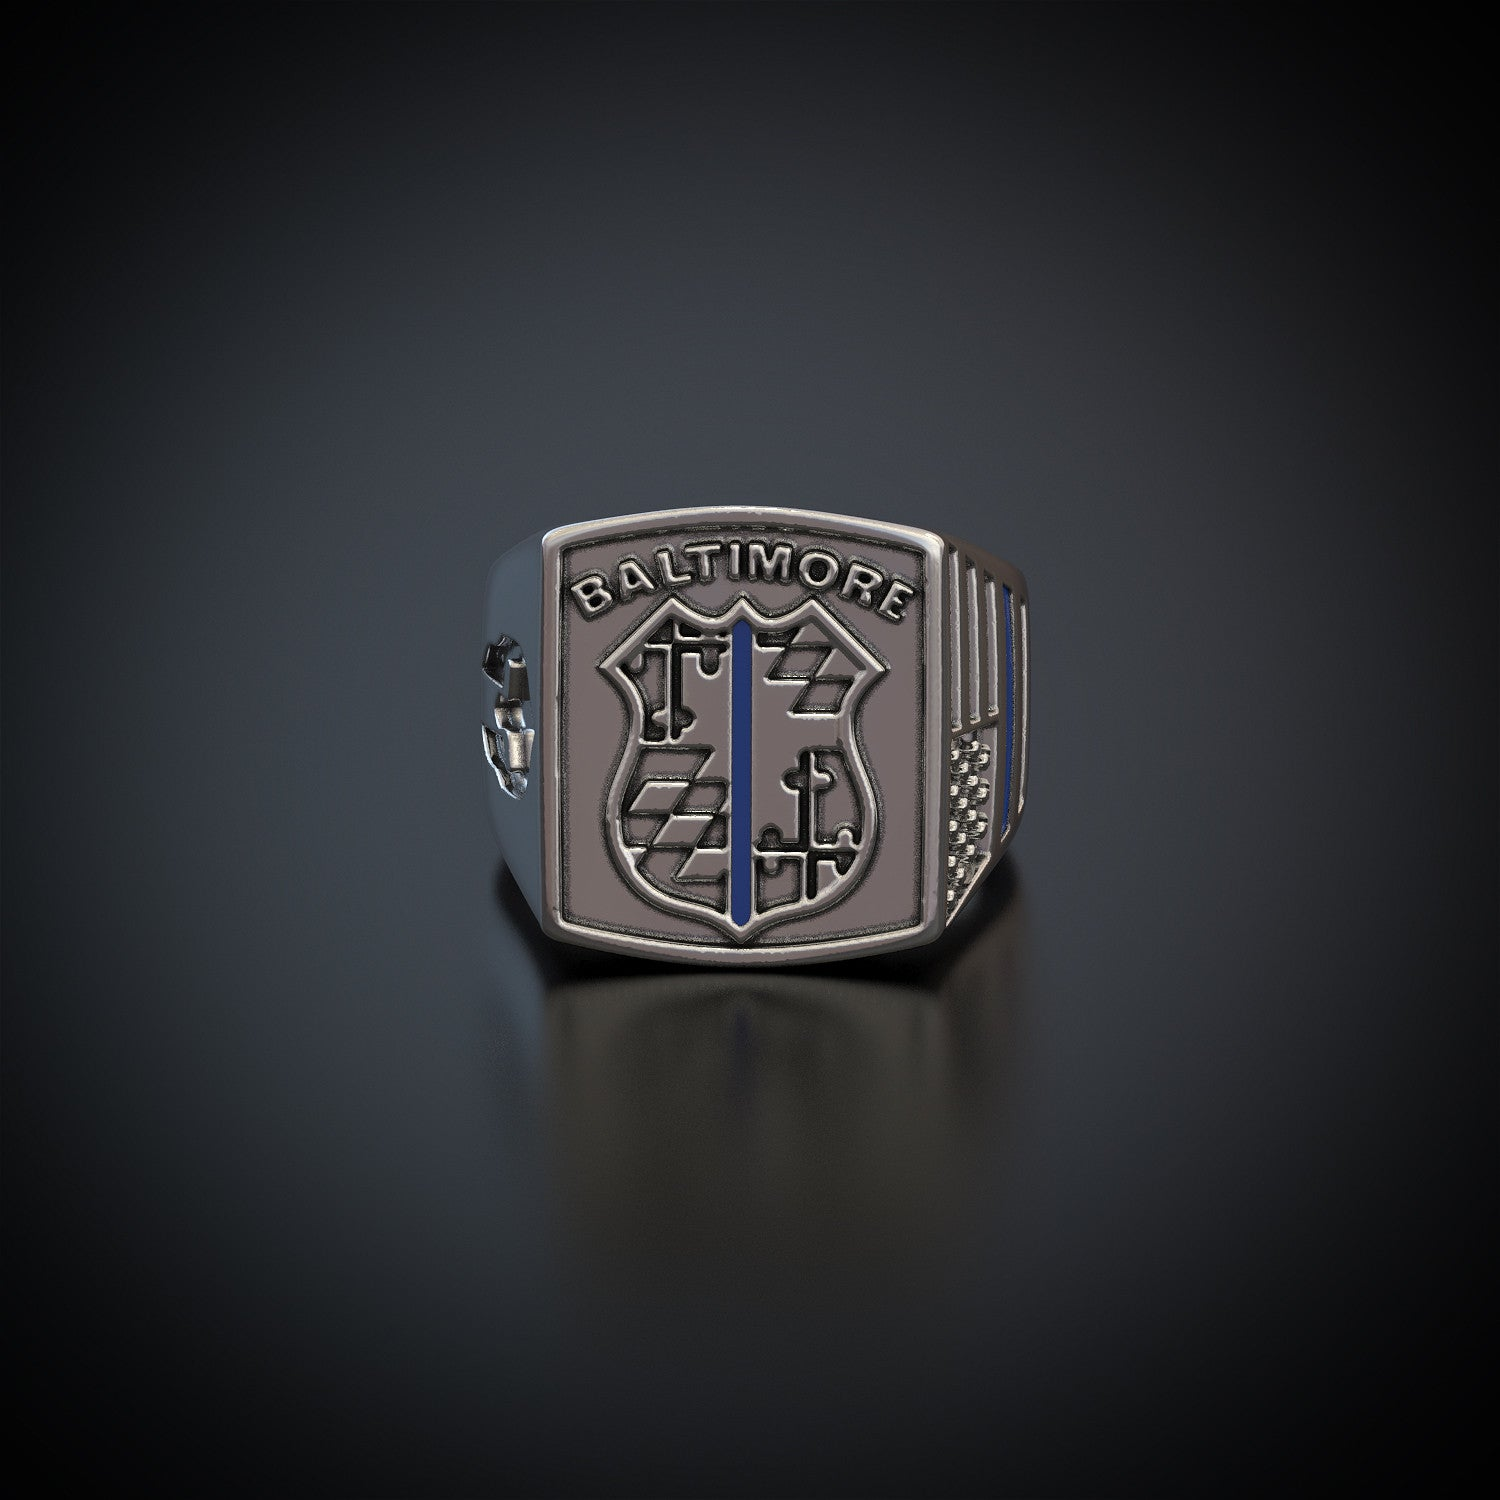 Baltimore PD Ring